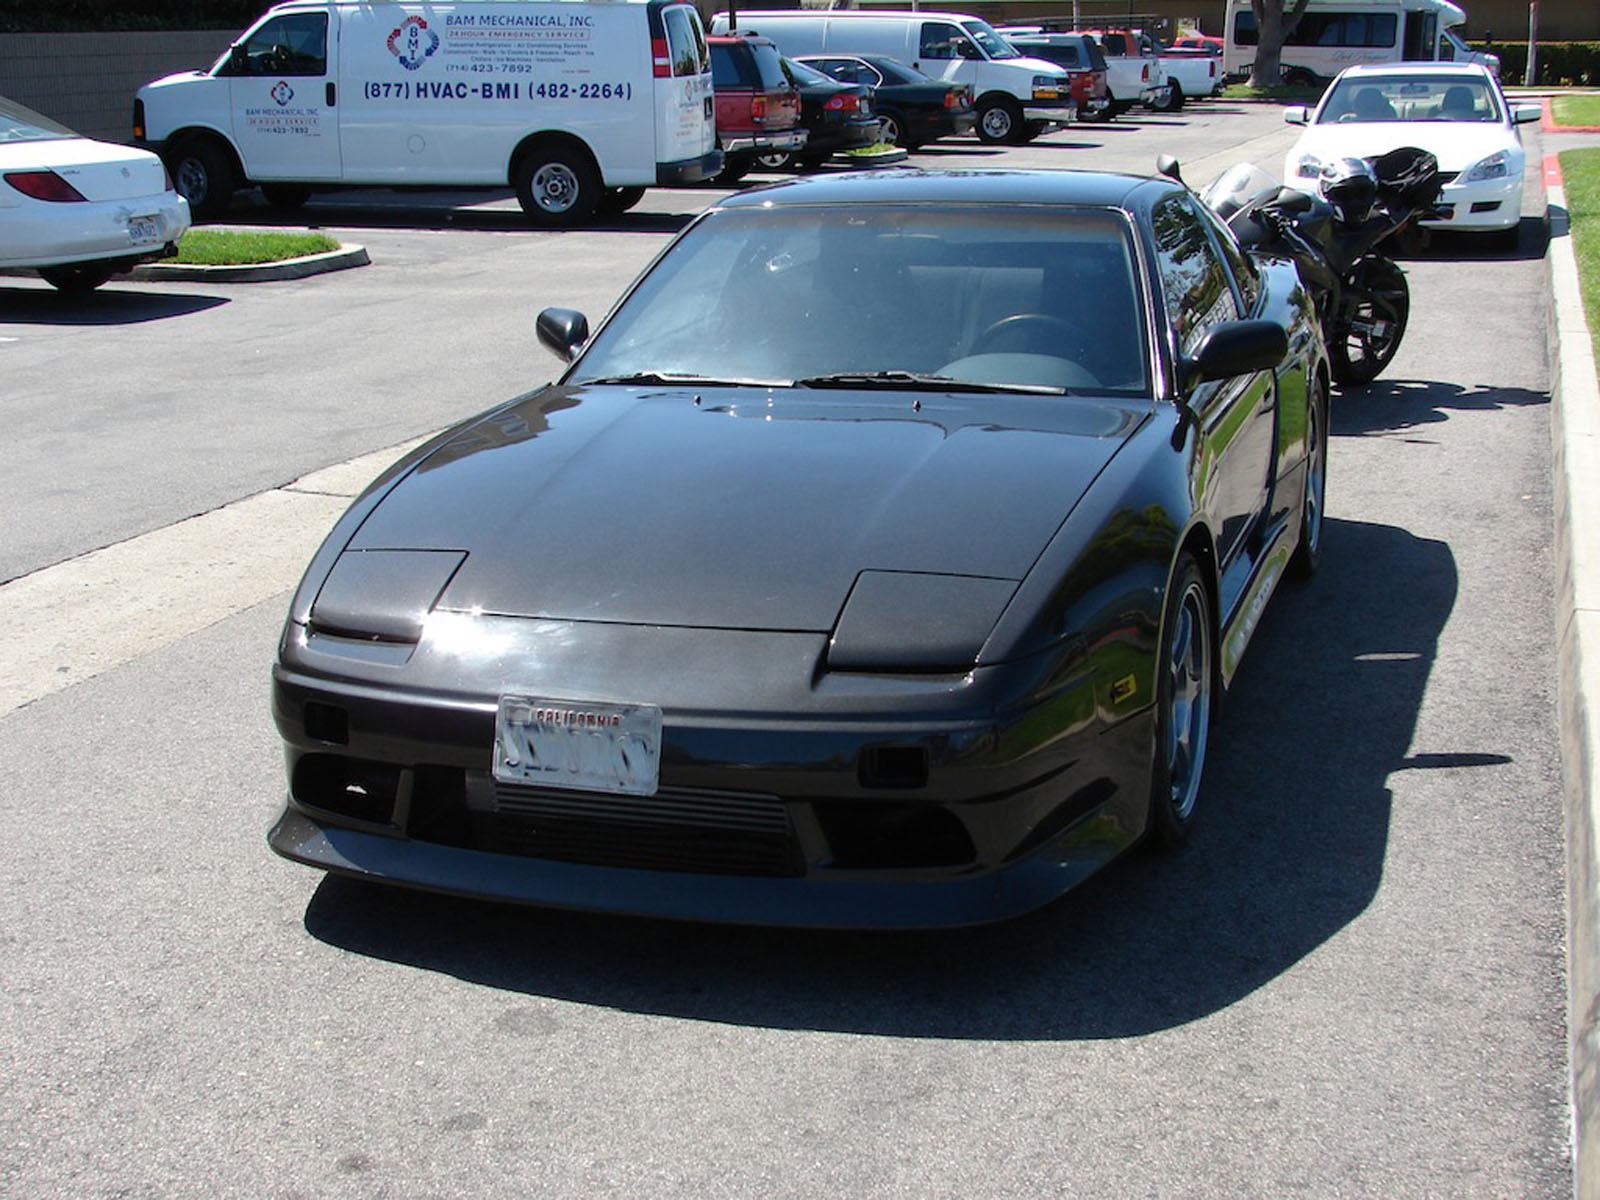 1993 nissan 2jz gte swap 240sx s13 for sale irvine. Black Bedroom Furniture Sets. Home Design Ideas